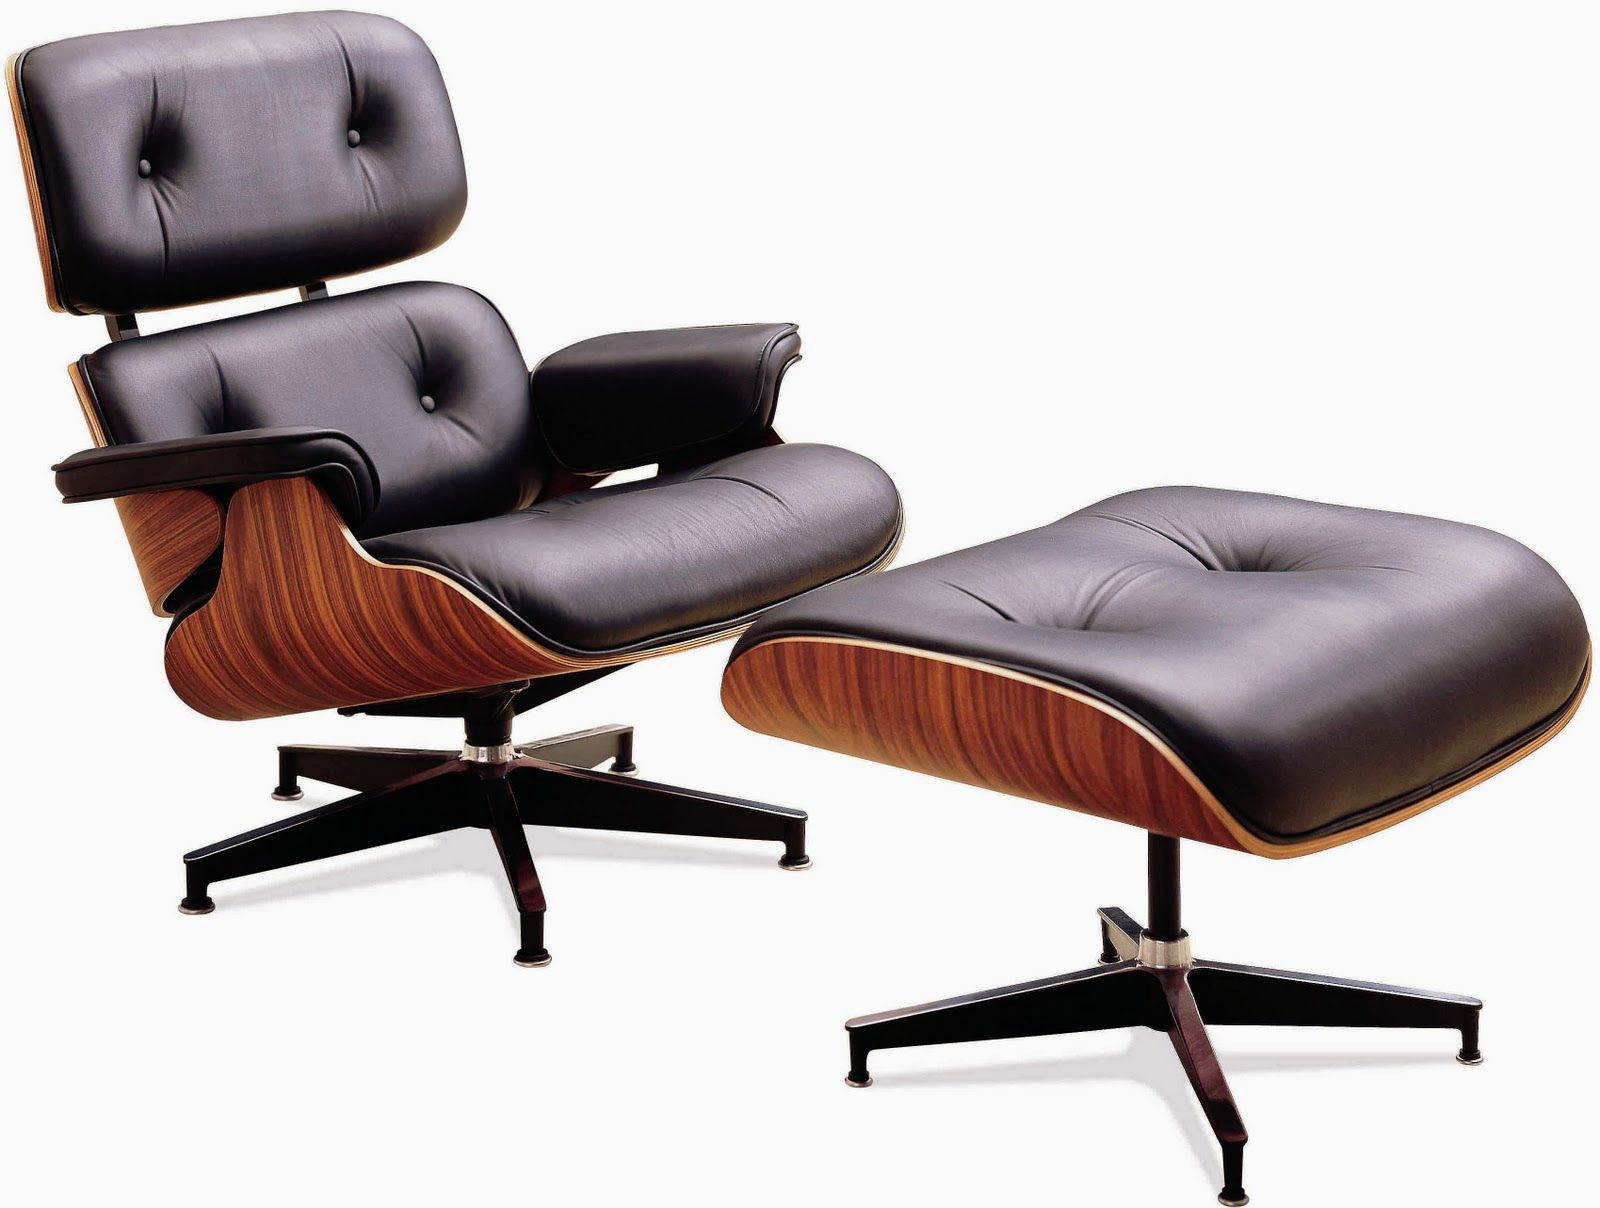 Muebles Eames Eames Lounge | Product Design | Pinterest | Muebles